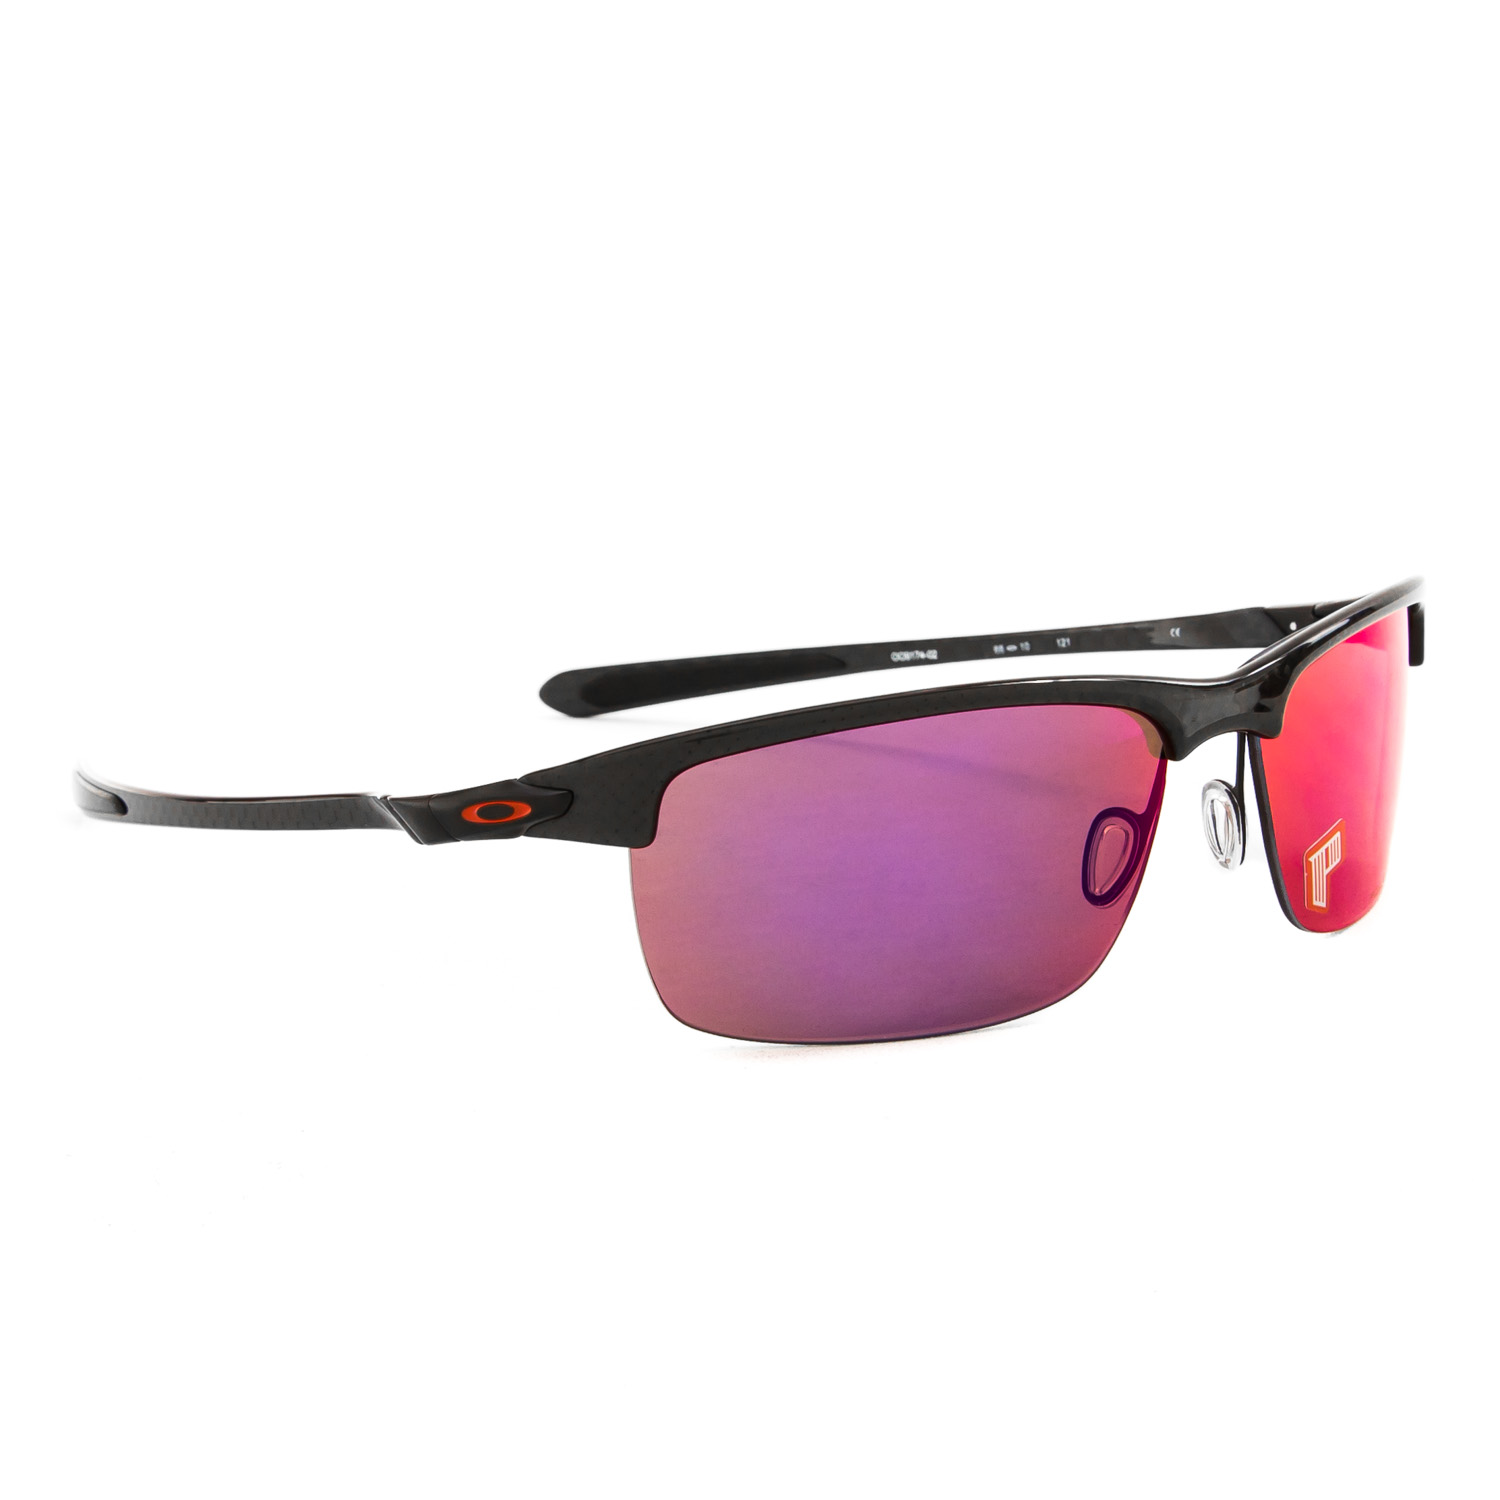 NEW Oakley Carbon Blade Sunglasses Black Frame Red ...